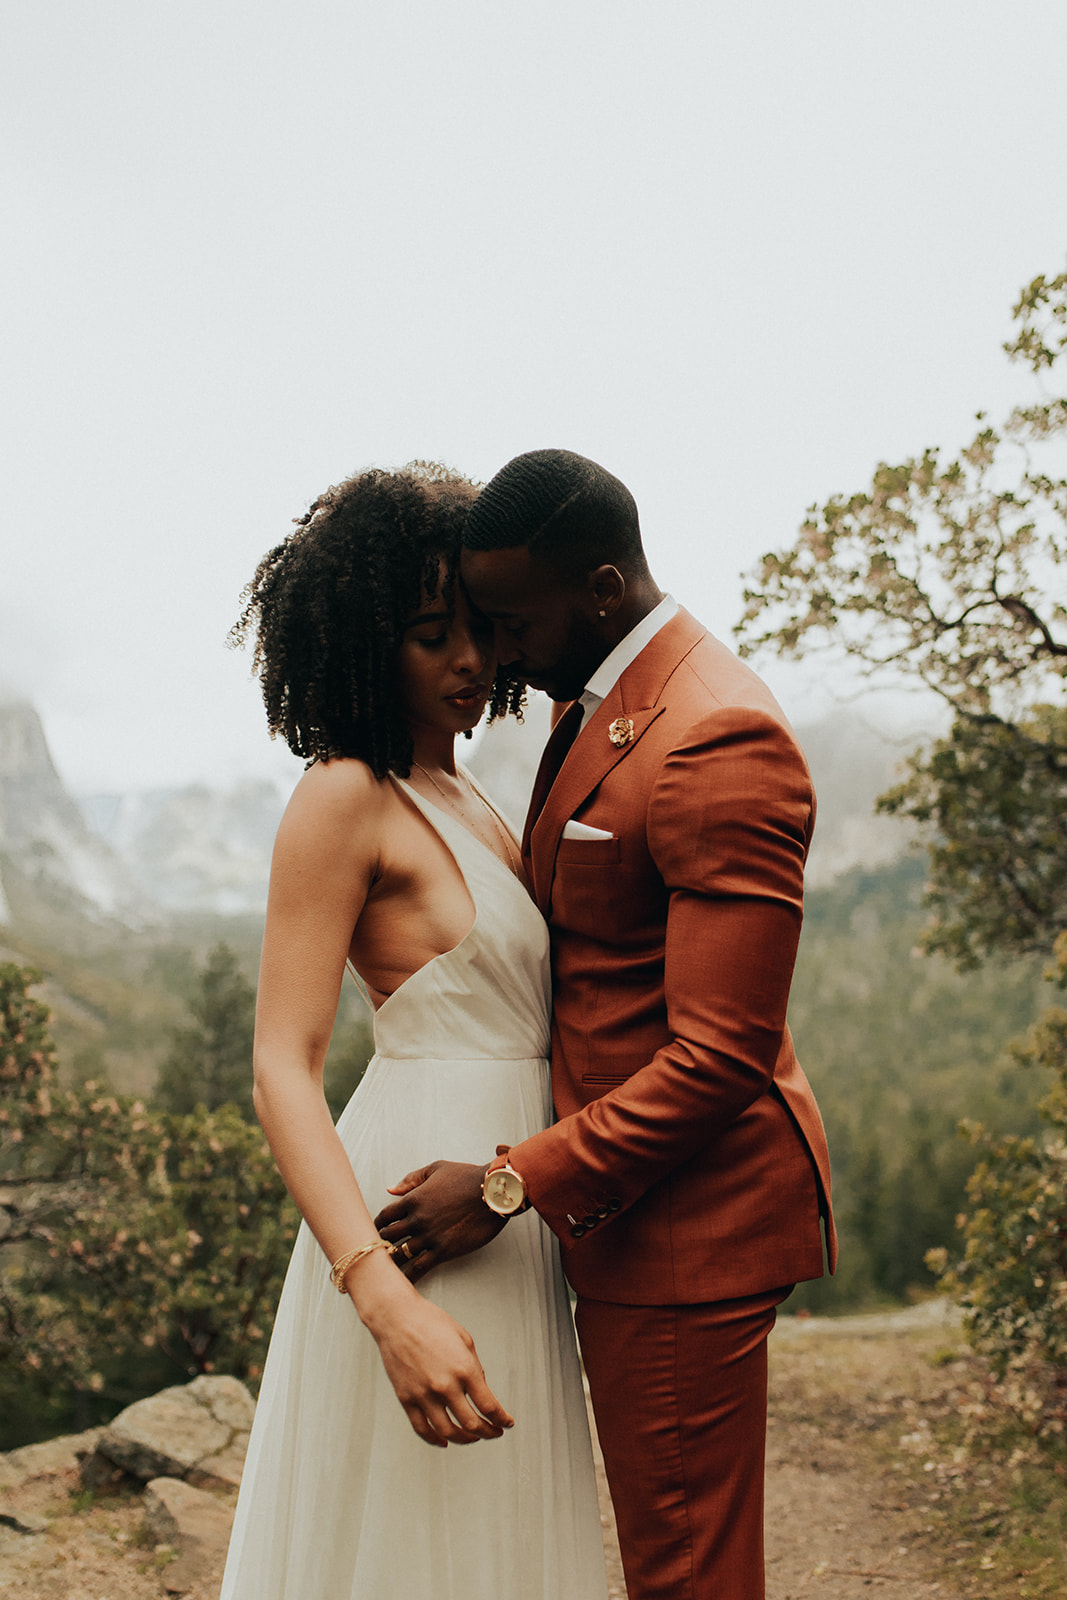 Yosemite_Elopement_Hannah_Alena_Photo_Portland_Wedding_Photographer-118.jpg